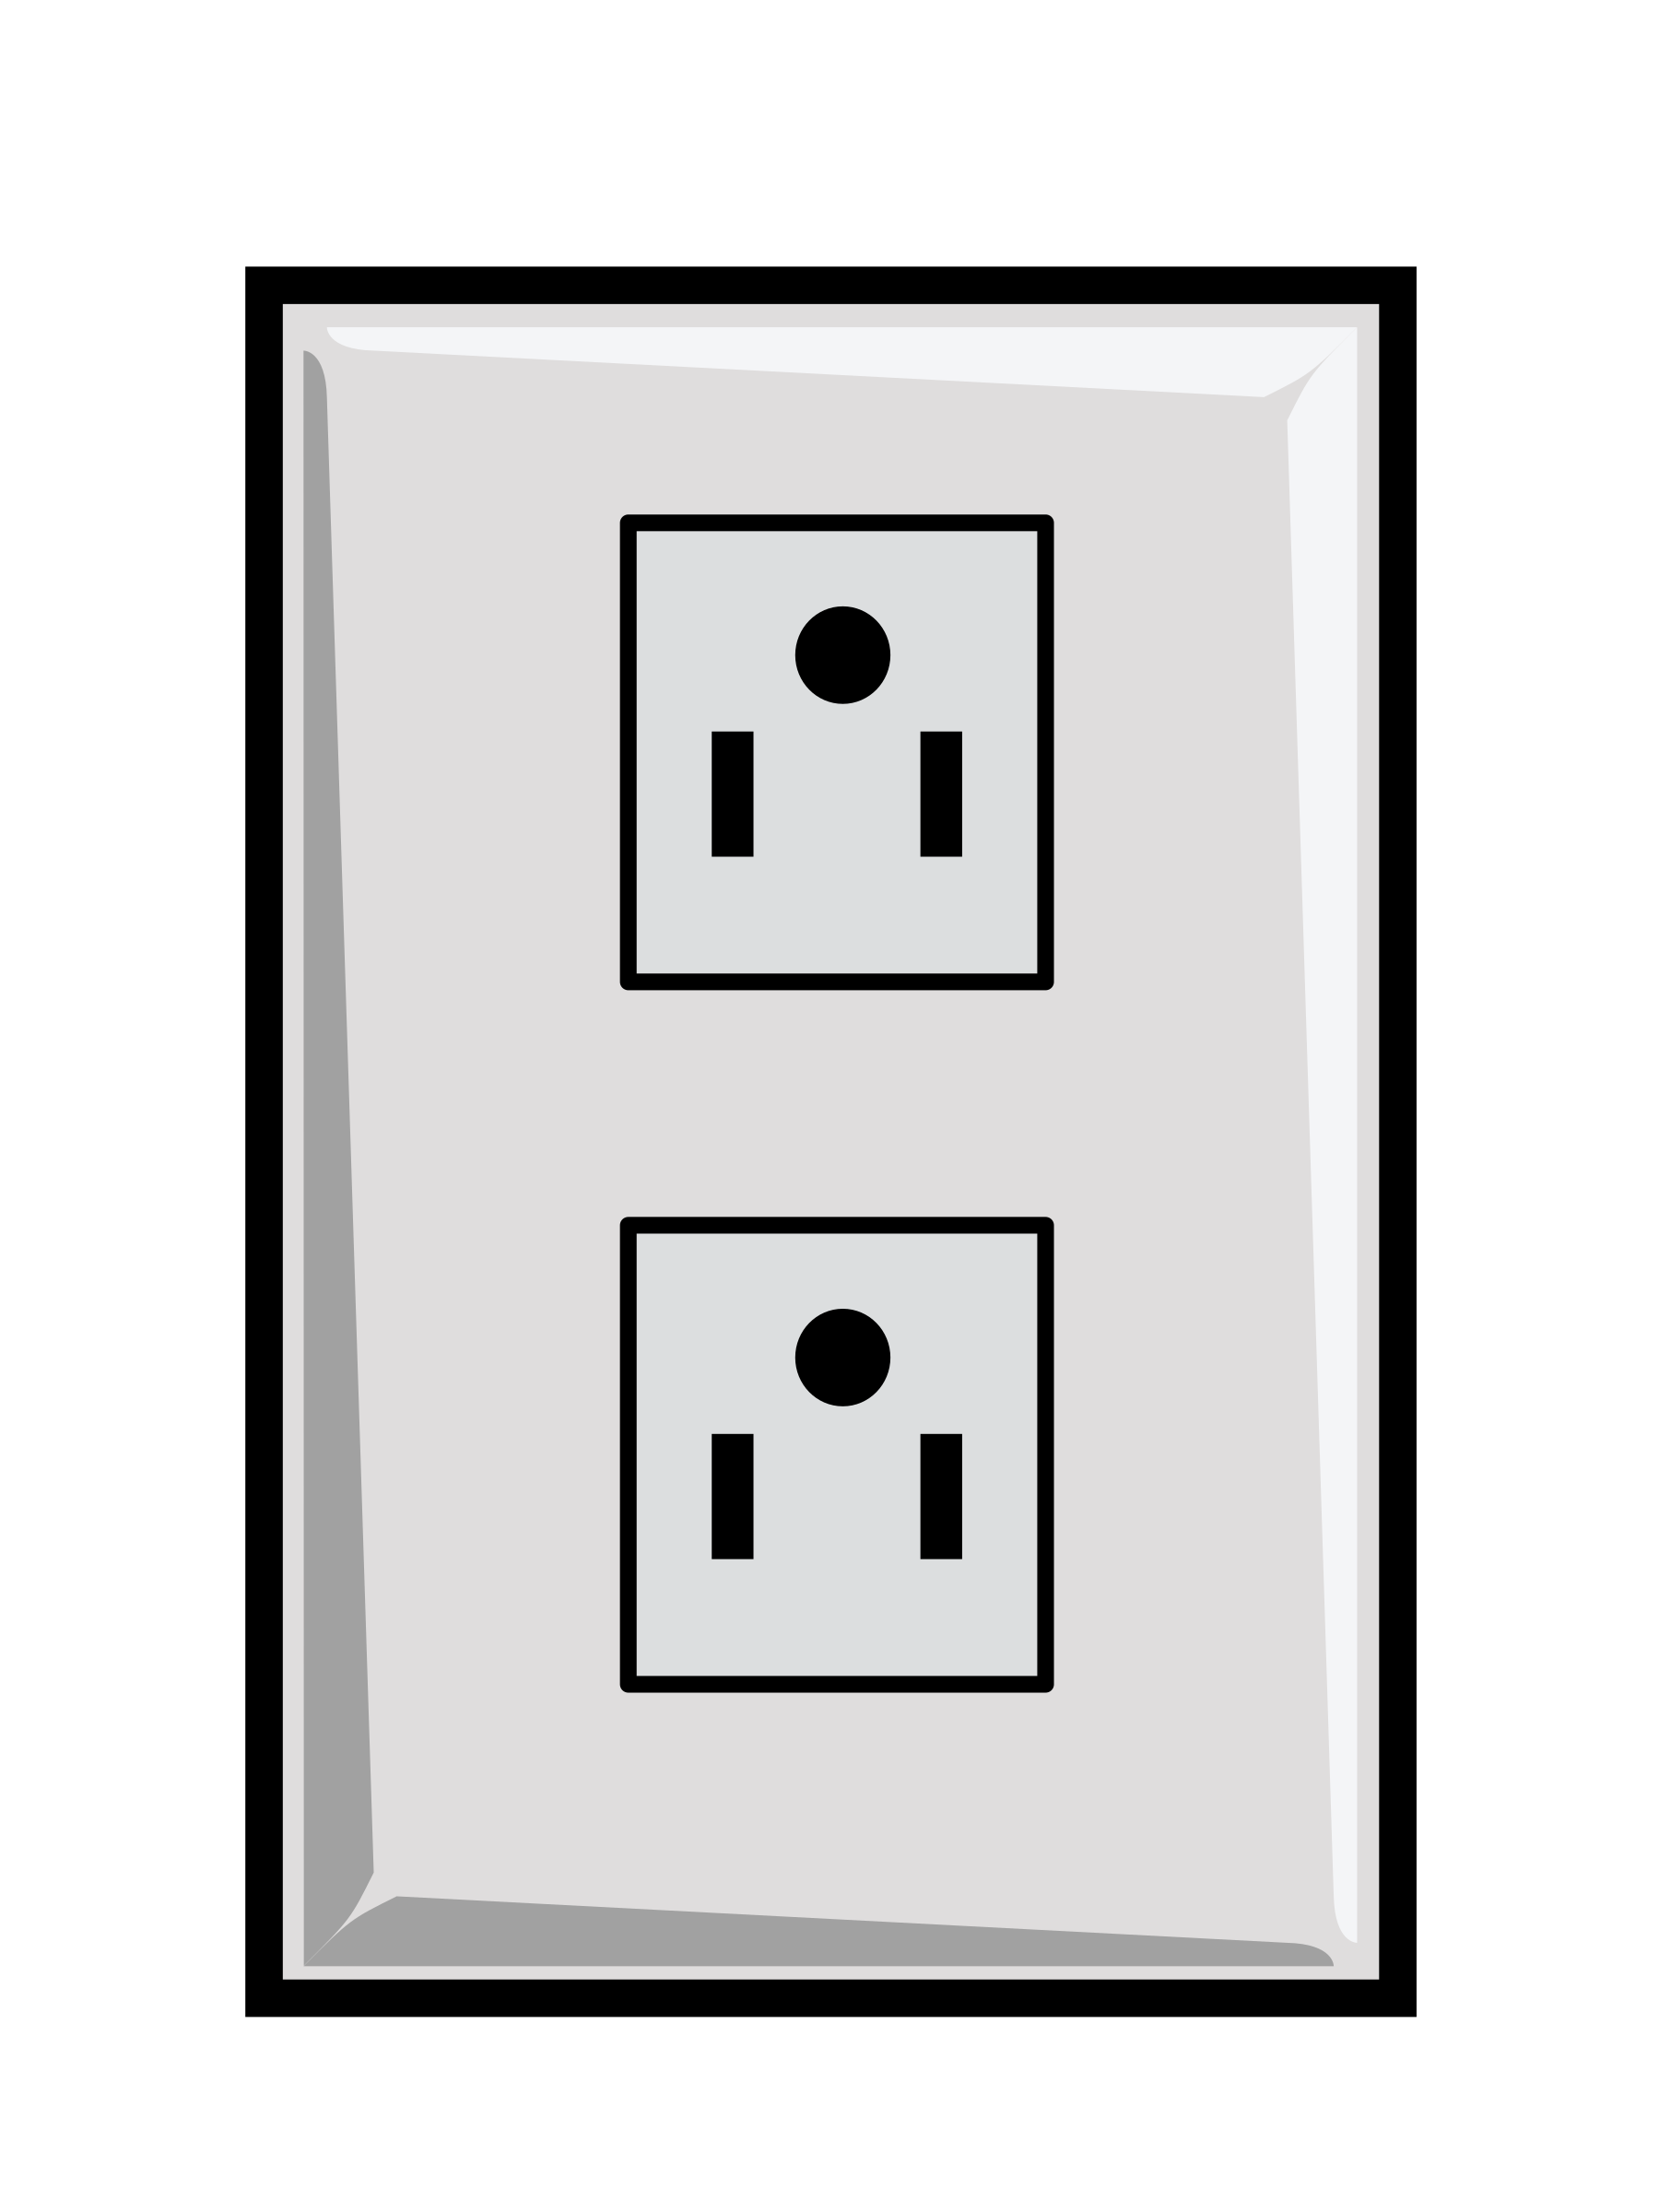 Power us big image. Electric clipart wall outlet